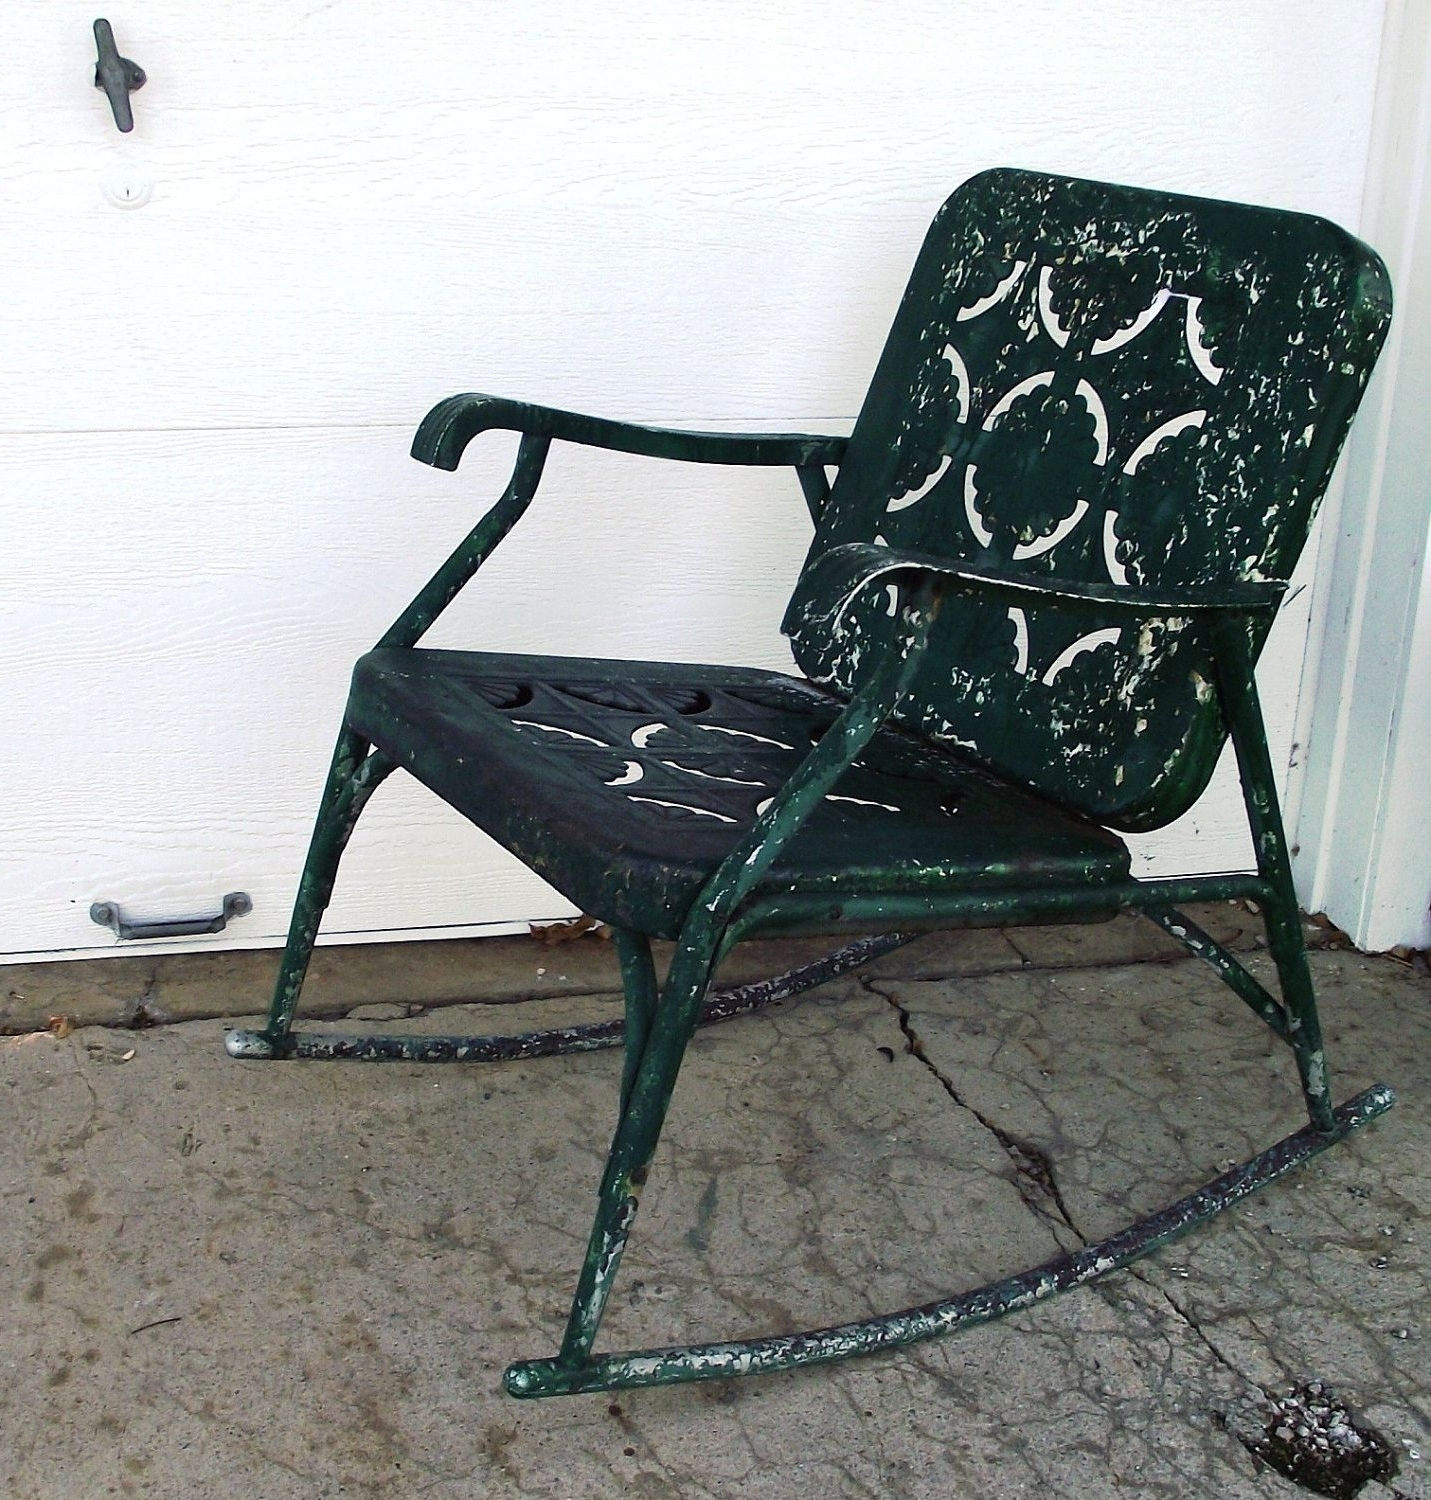 Most Recently Released Vintage Metal Rocking Patio Chairs Intended For Vintage Garden Green Metal Rocking Chair Cutoutjodysvintage (View 12 of 20)